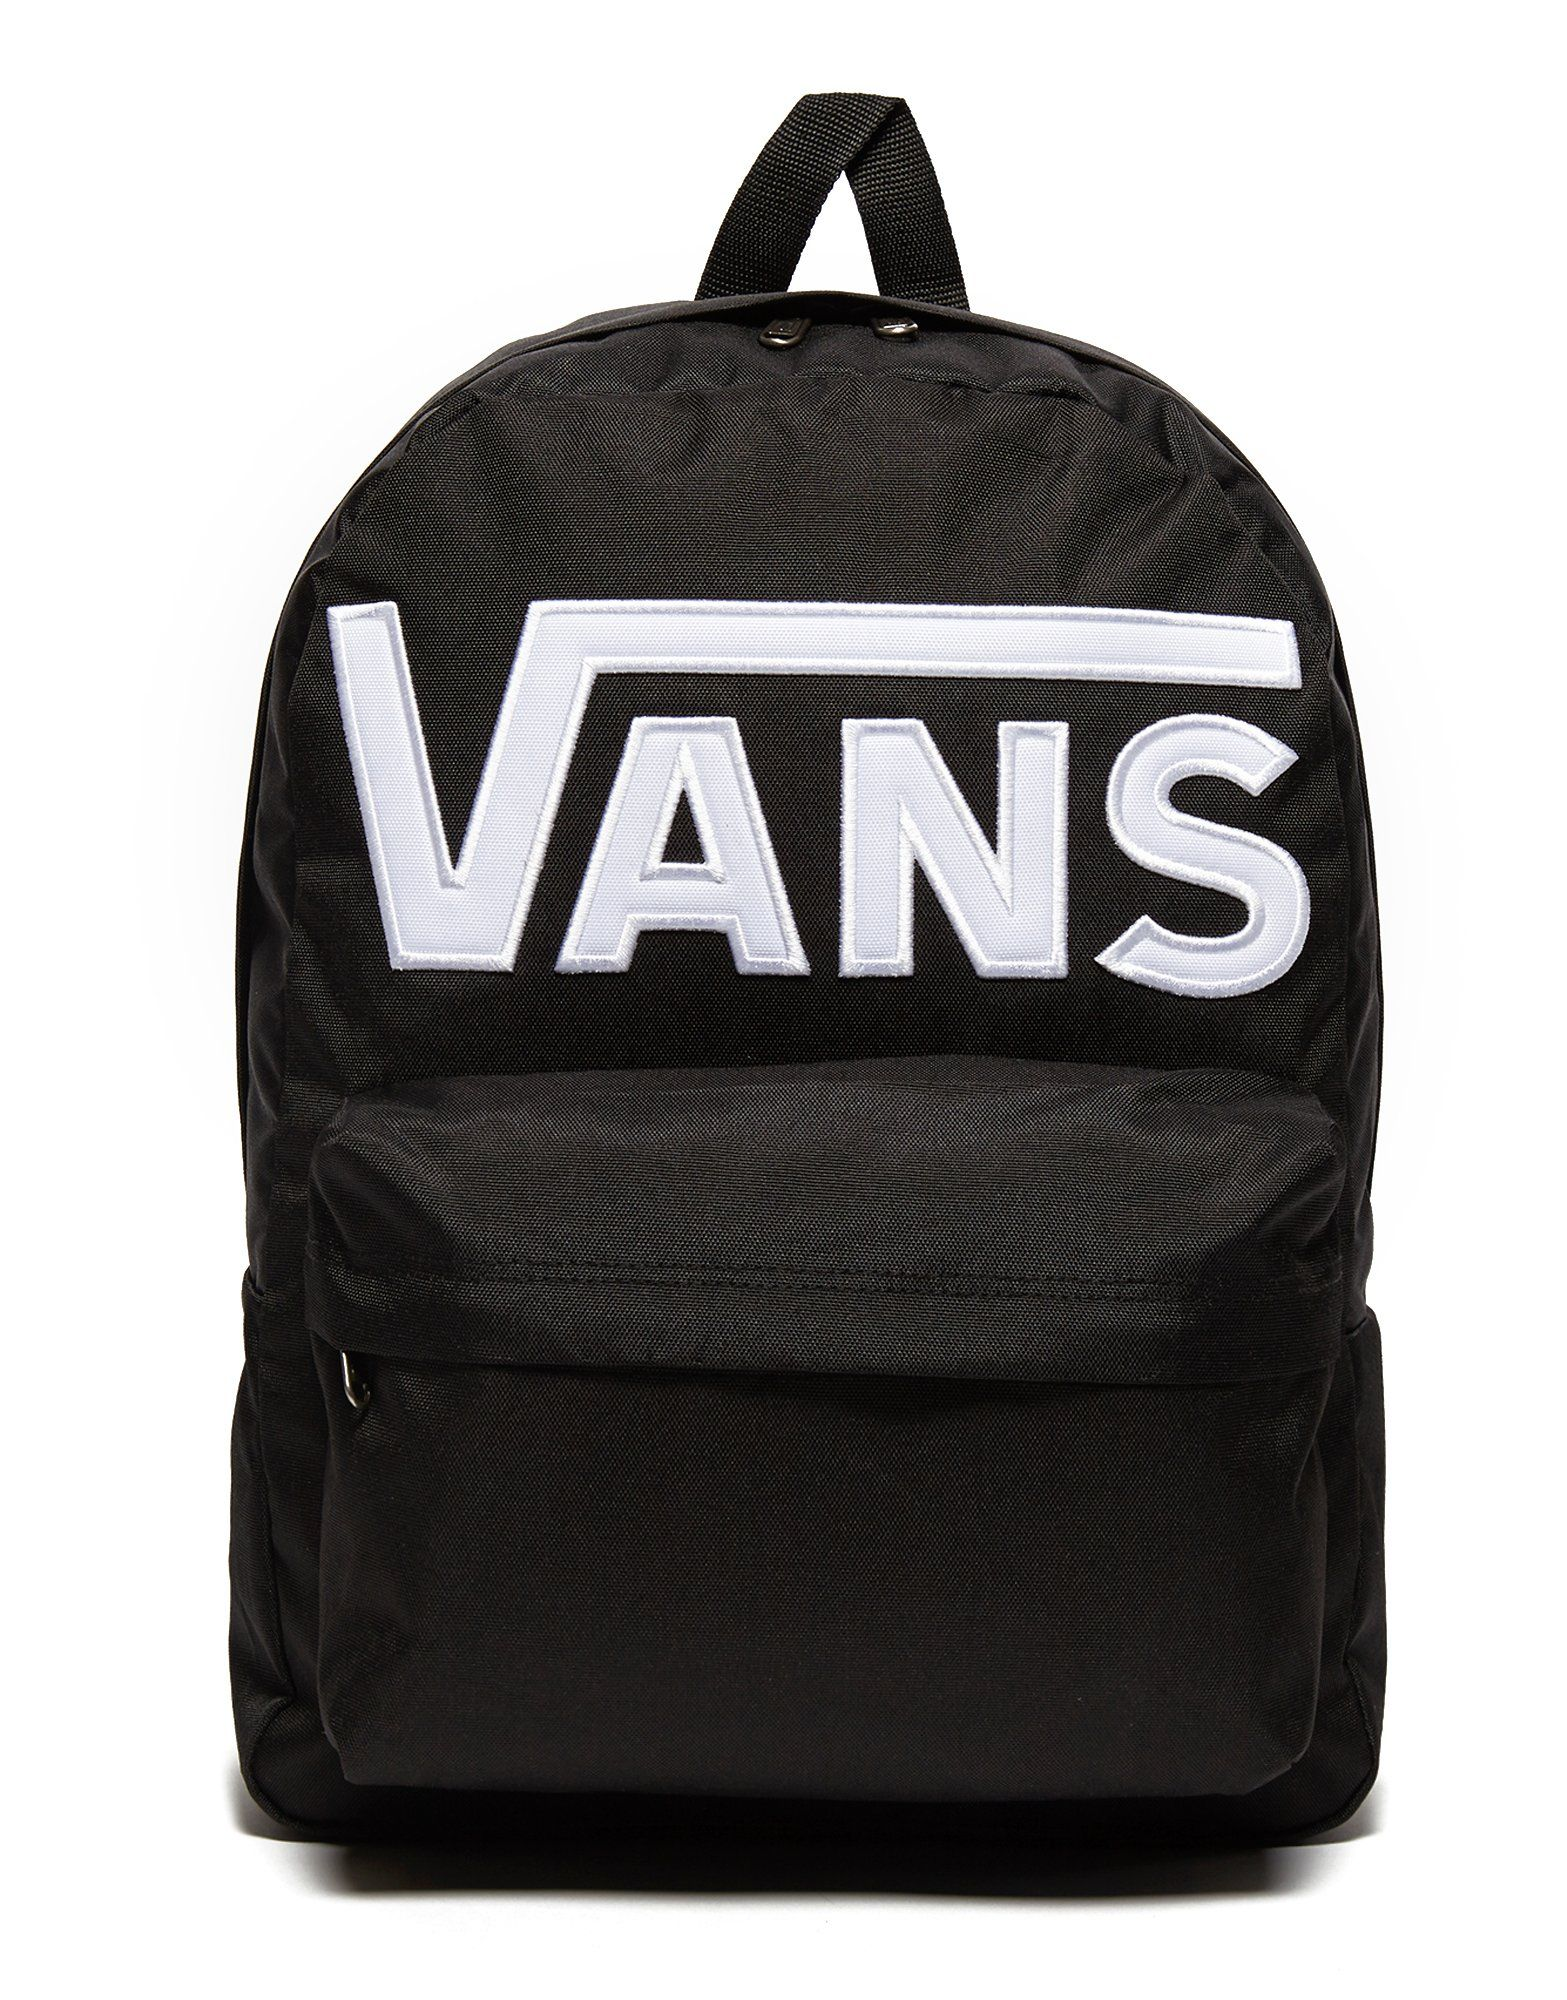 Vans Old Skool Backpack